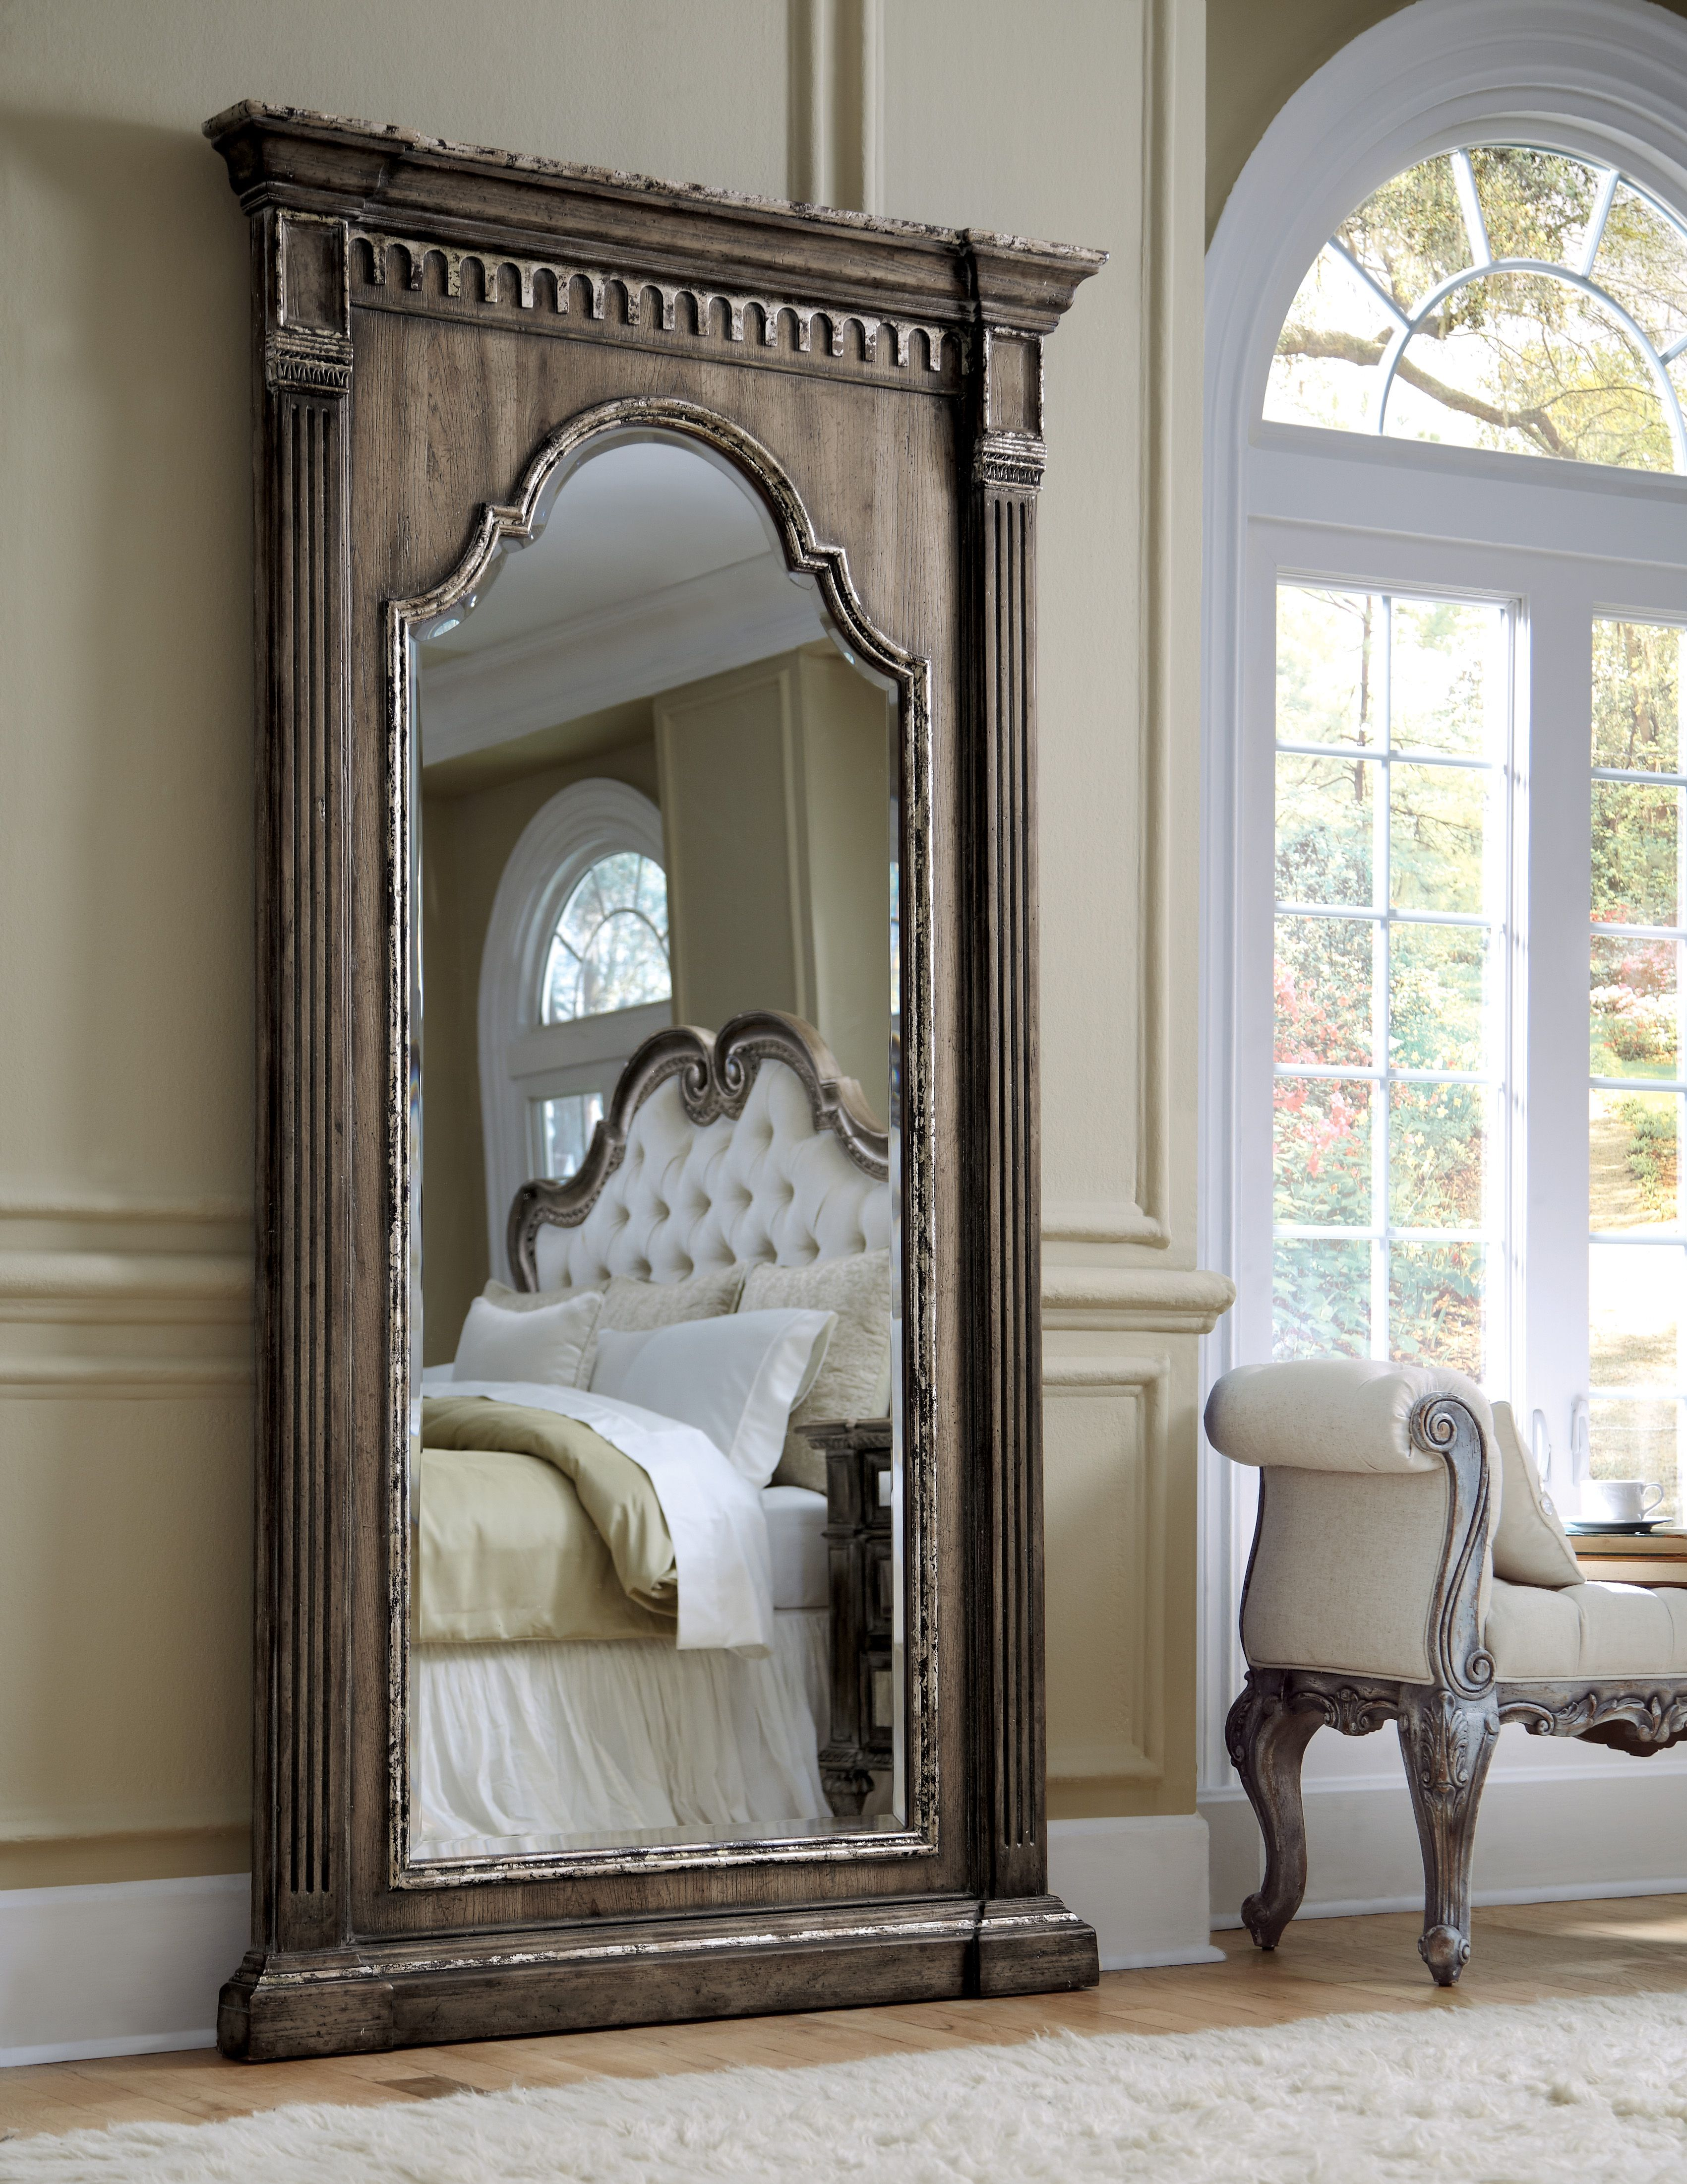 Arabella By Accentrics Home Bedroom Furniture Mirror Fulllengthmirror